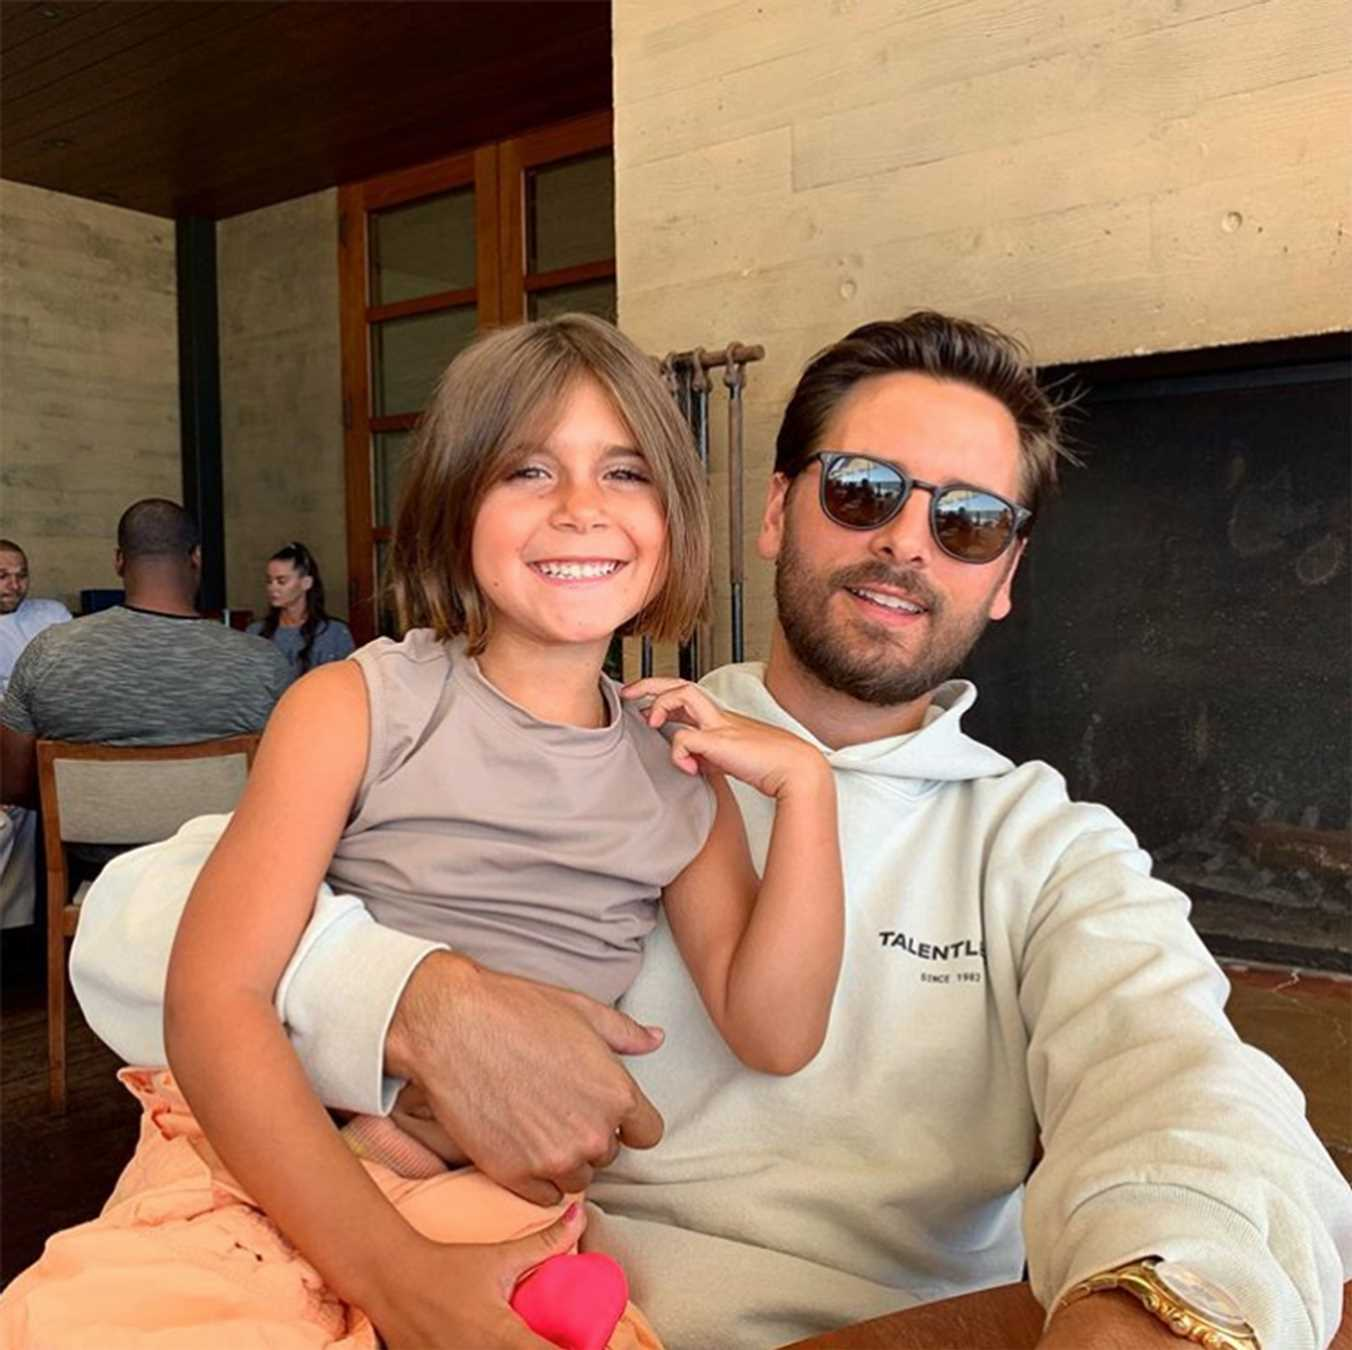 Scott Disick Poses with Daughter Penelope as He Says His Kids Are His 'Real Love and Passion'